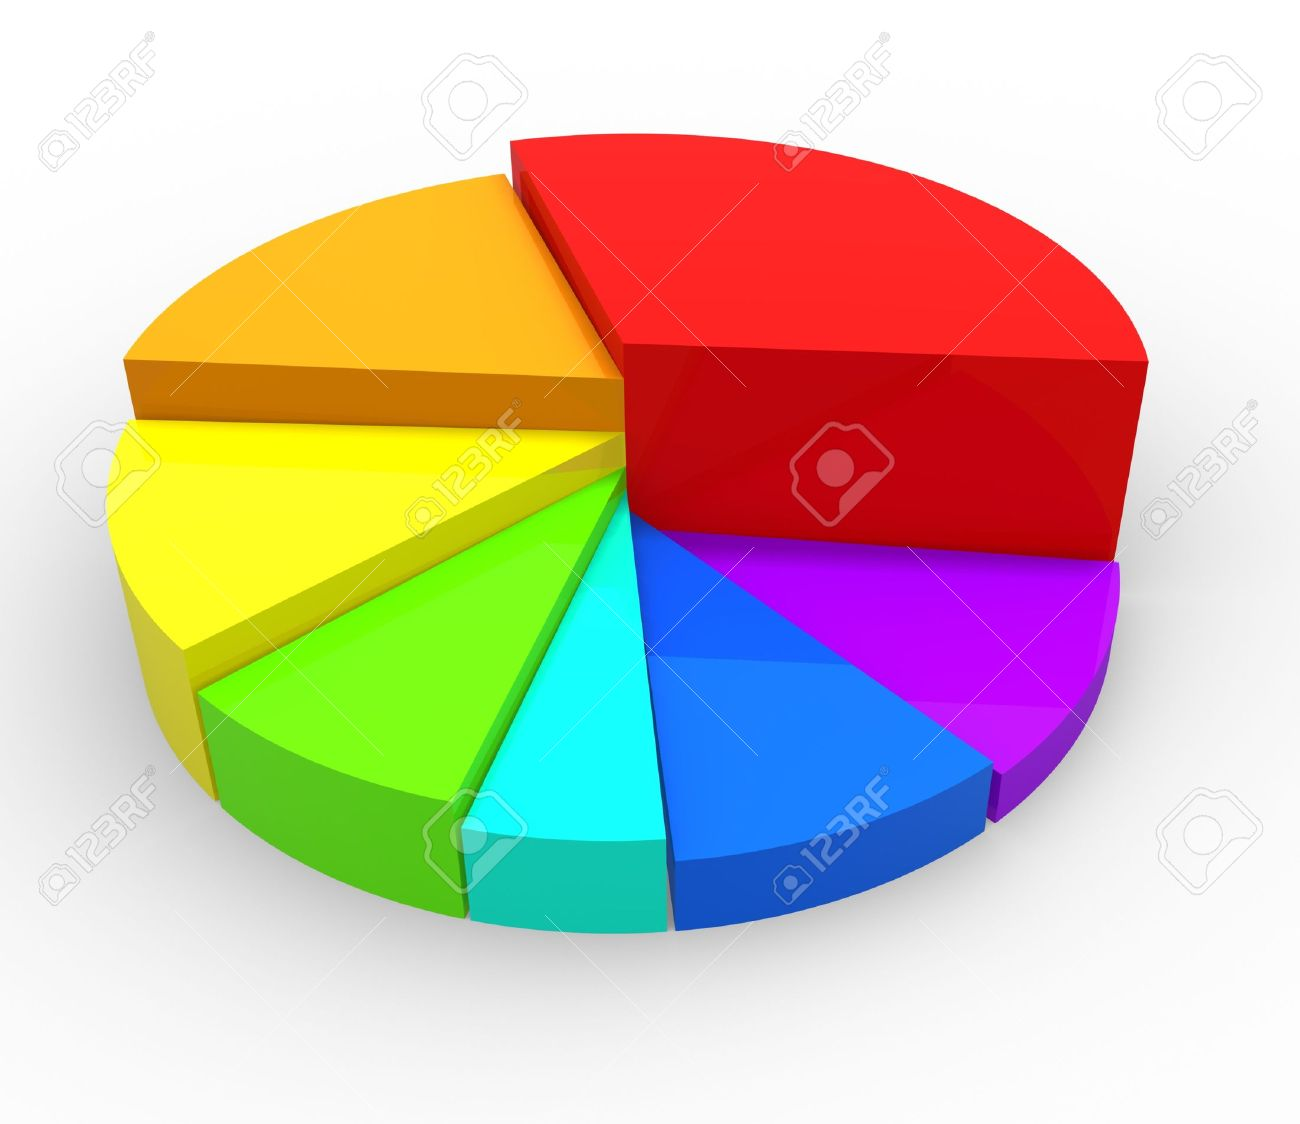 Pie chart maker wiring in an electric cooker msd 6al wiring pie chart excel template choice image templates example free 14767278 a colorful pie chart graph 3d ccuart Image collections